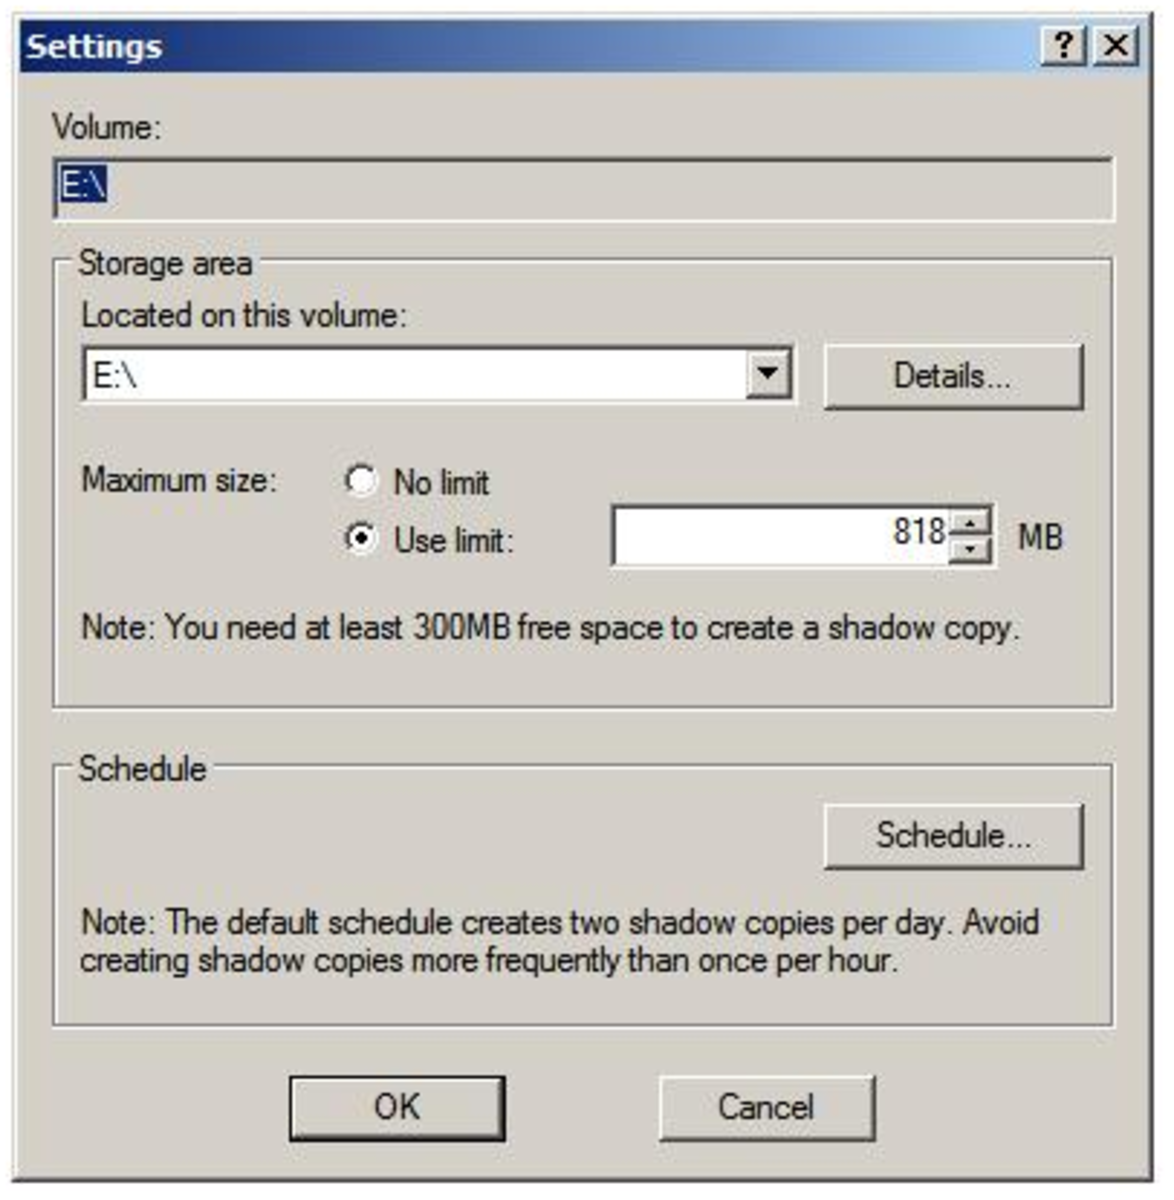 Configuring Shadow Copy, illustration of Settings tab.